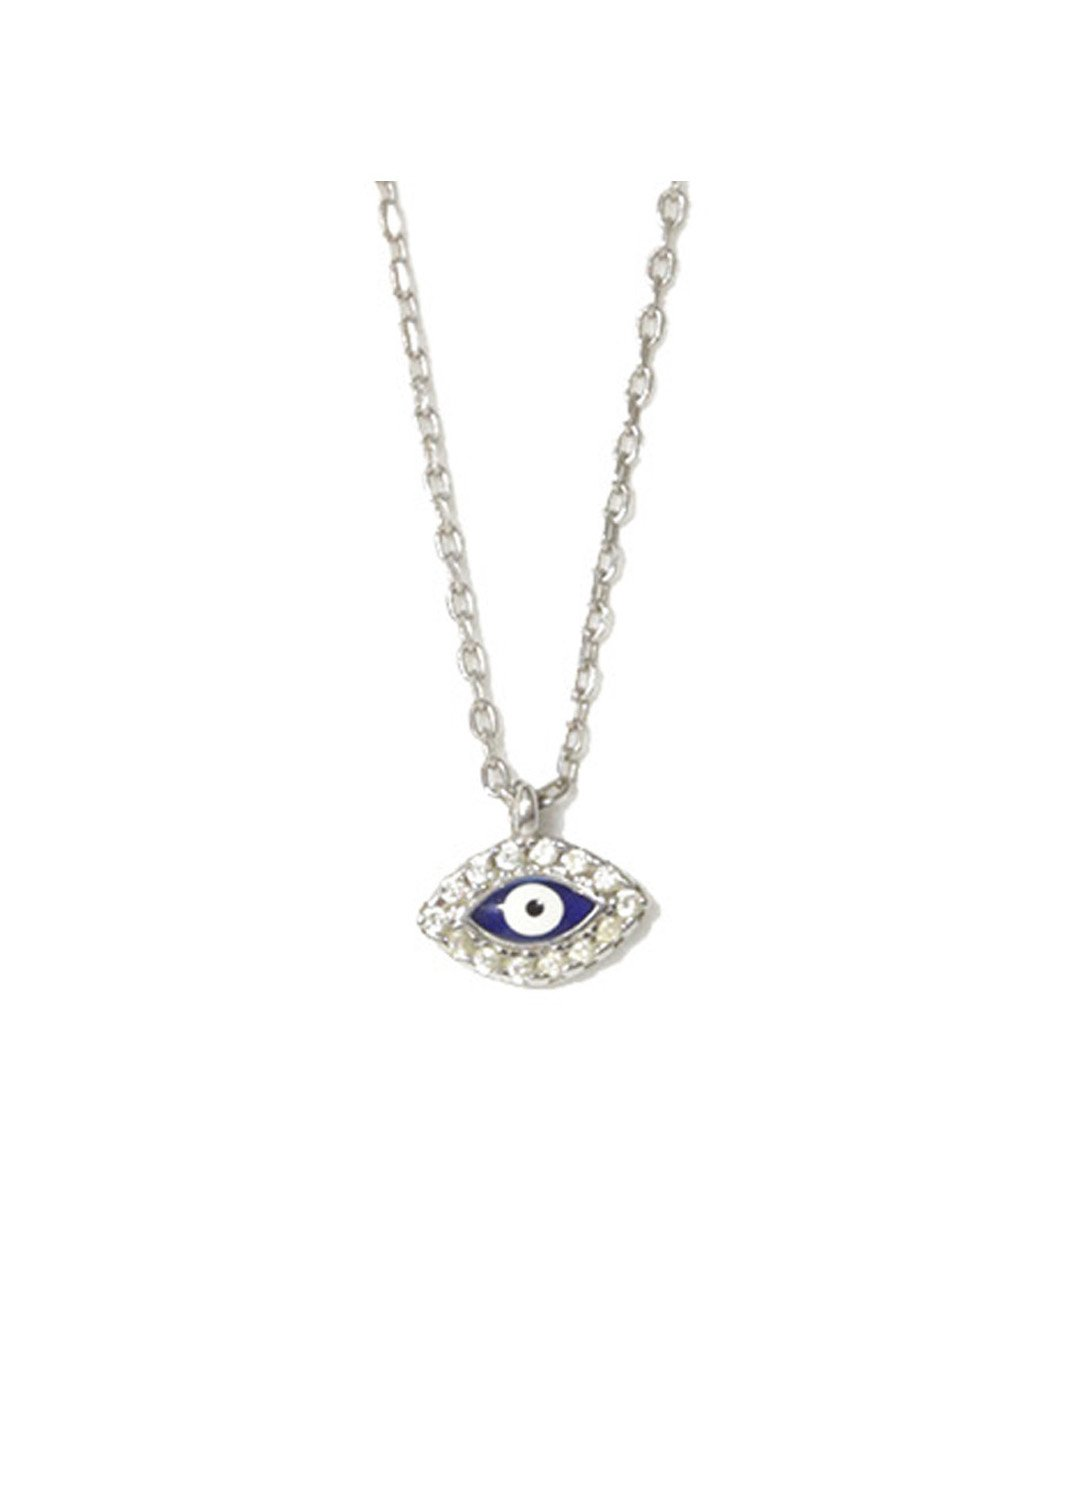 Evil eye silver necklace with zircon